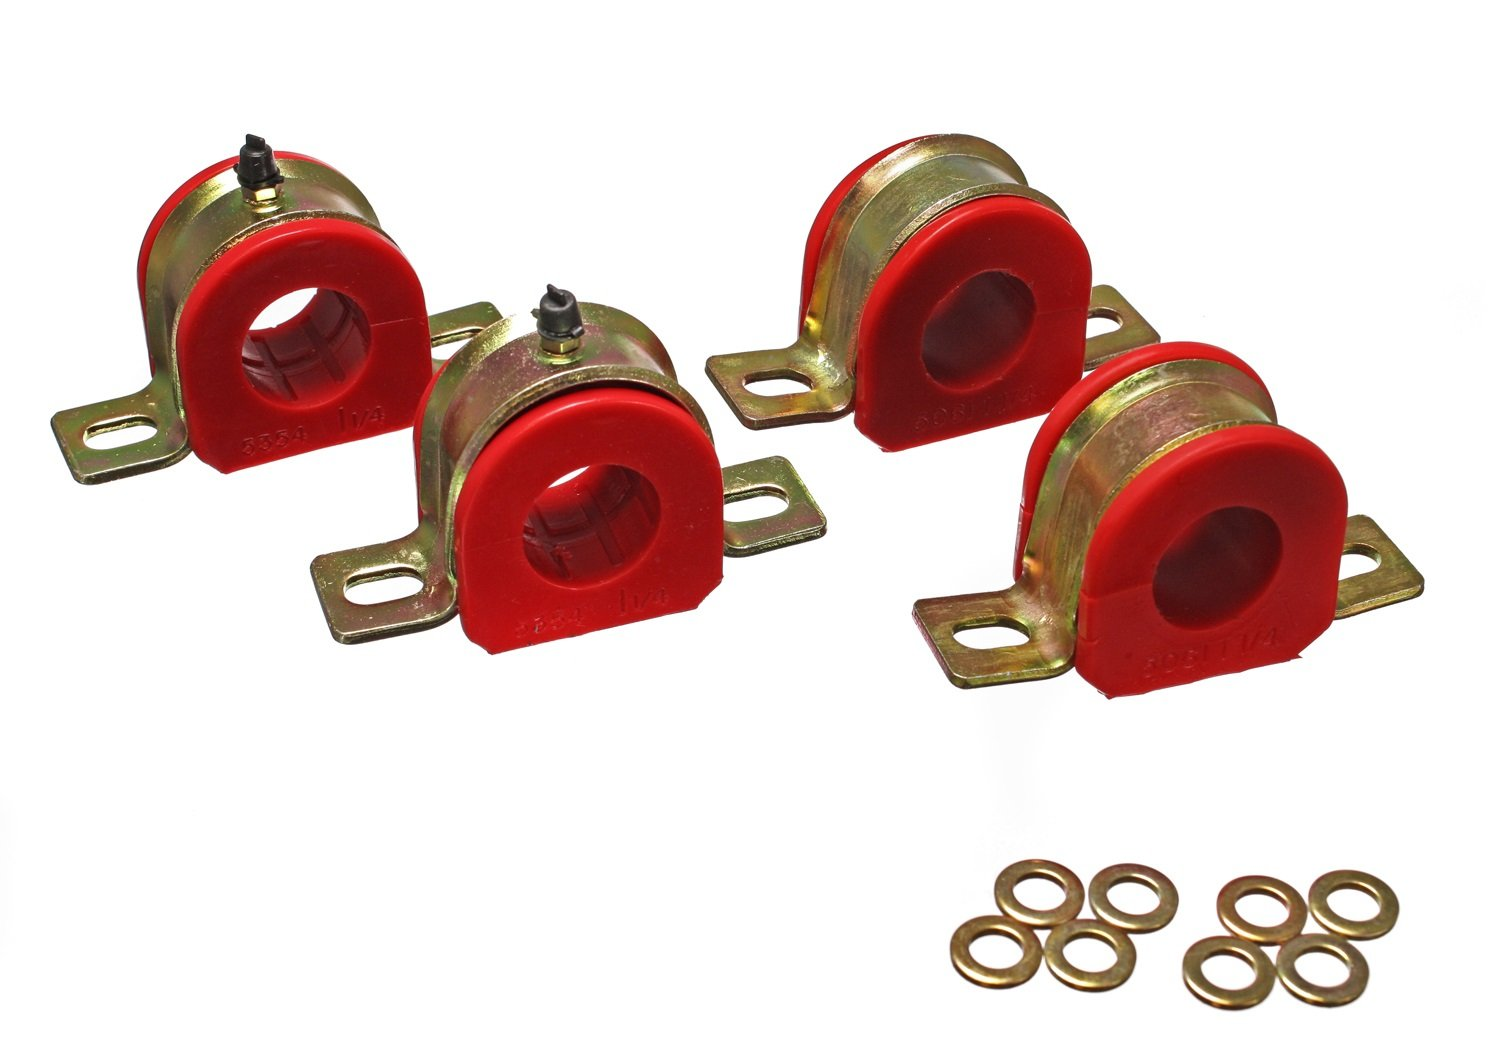 Energy Suspension 3.5177R 1-1/4' Greasable Sway Bar Set for GM